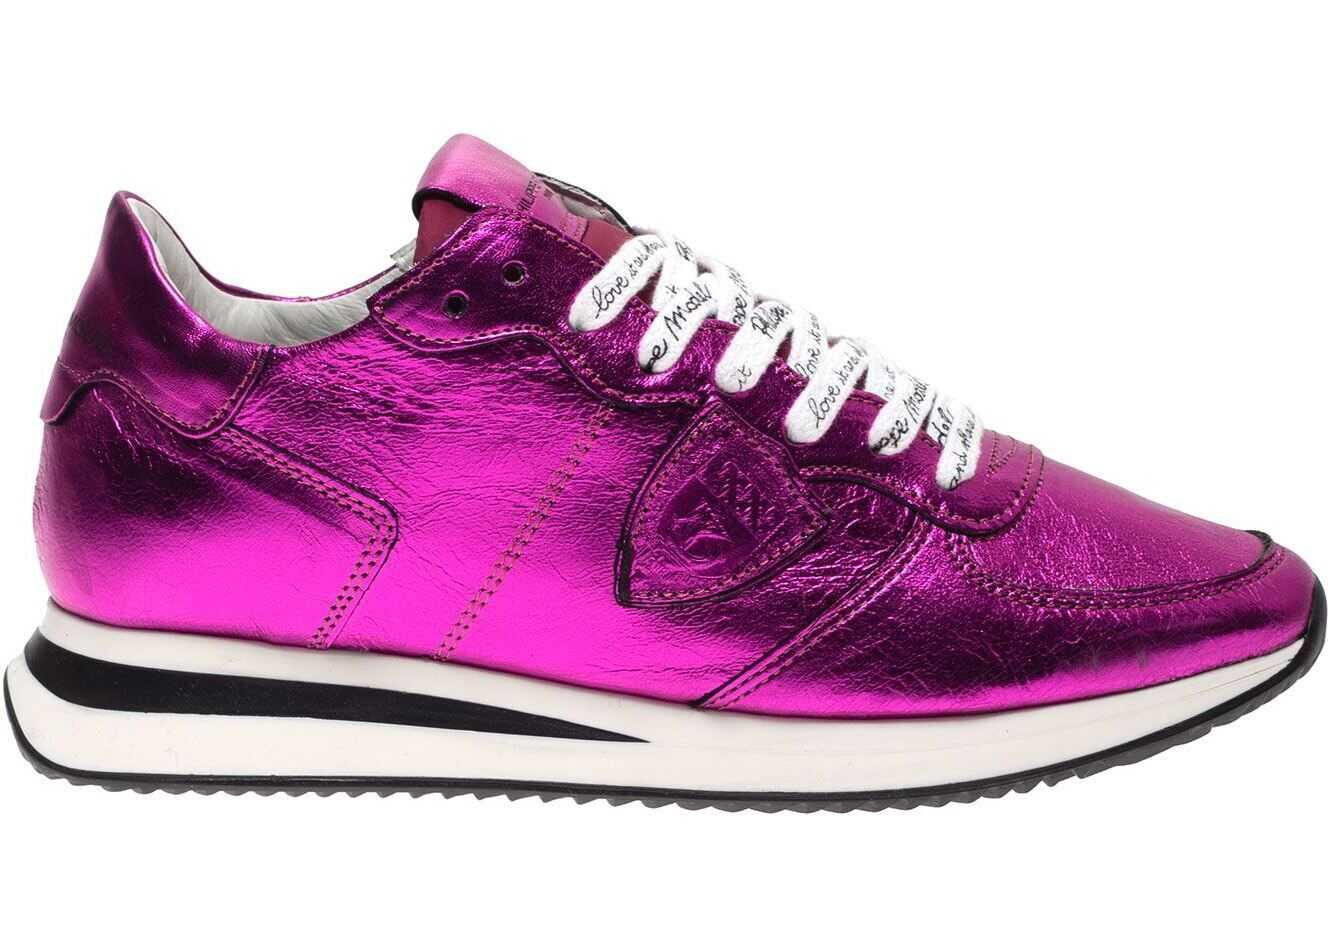 Philippe Model Trpx Metal Pop Sneakers In Fuchsia Fuchsia